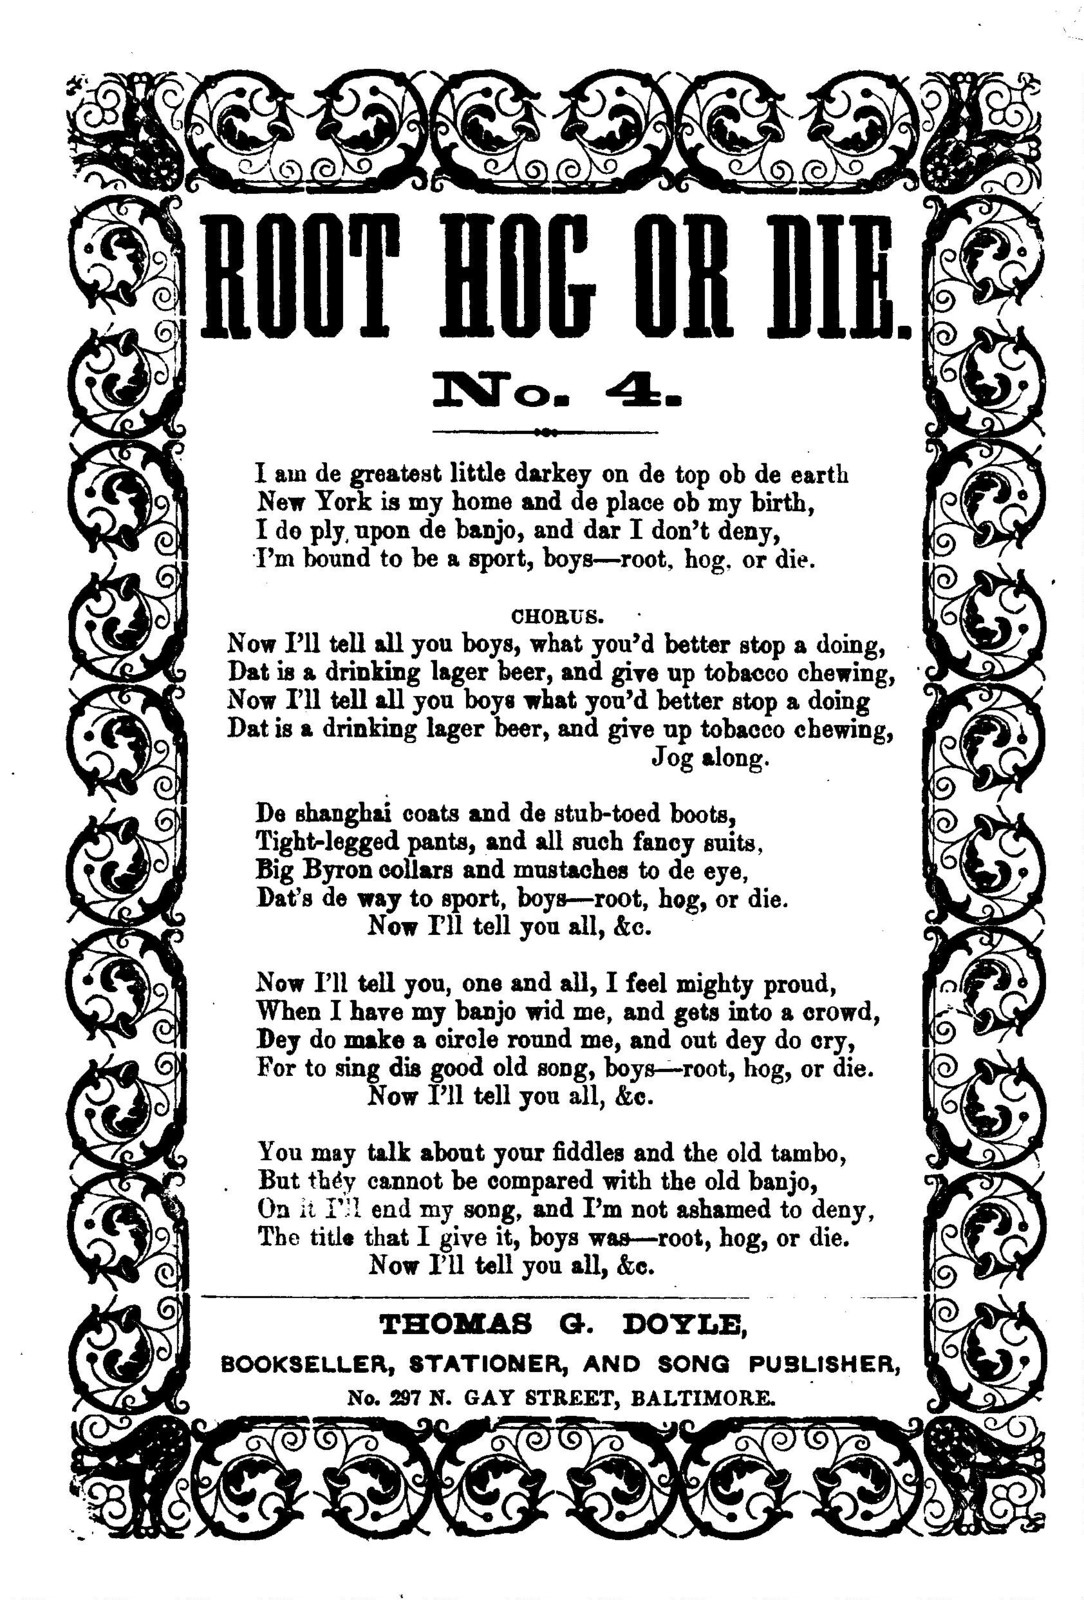 Root hog or die. No. 4. Thomas G. Doyle, Bookseller, ... Baltimore